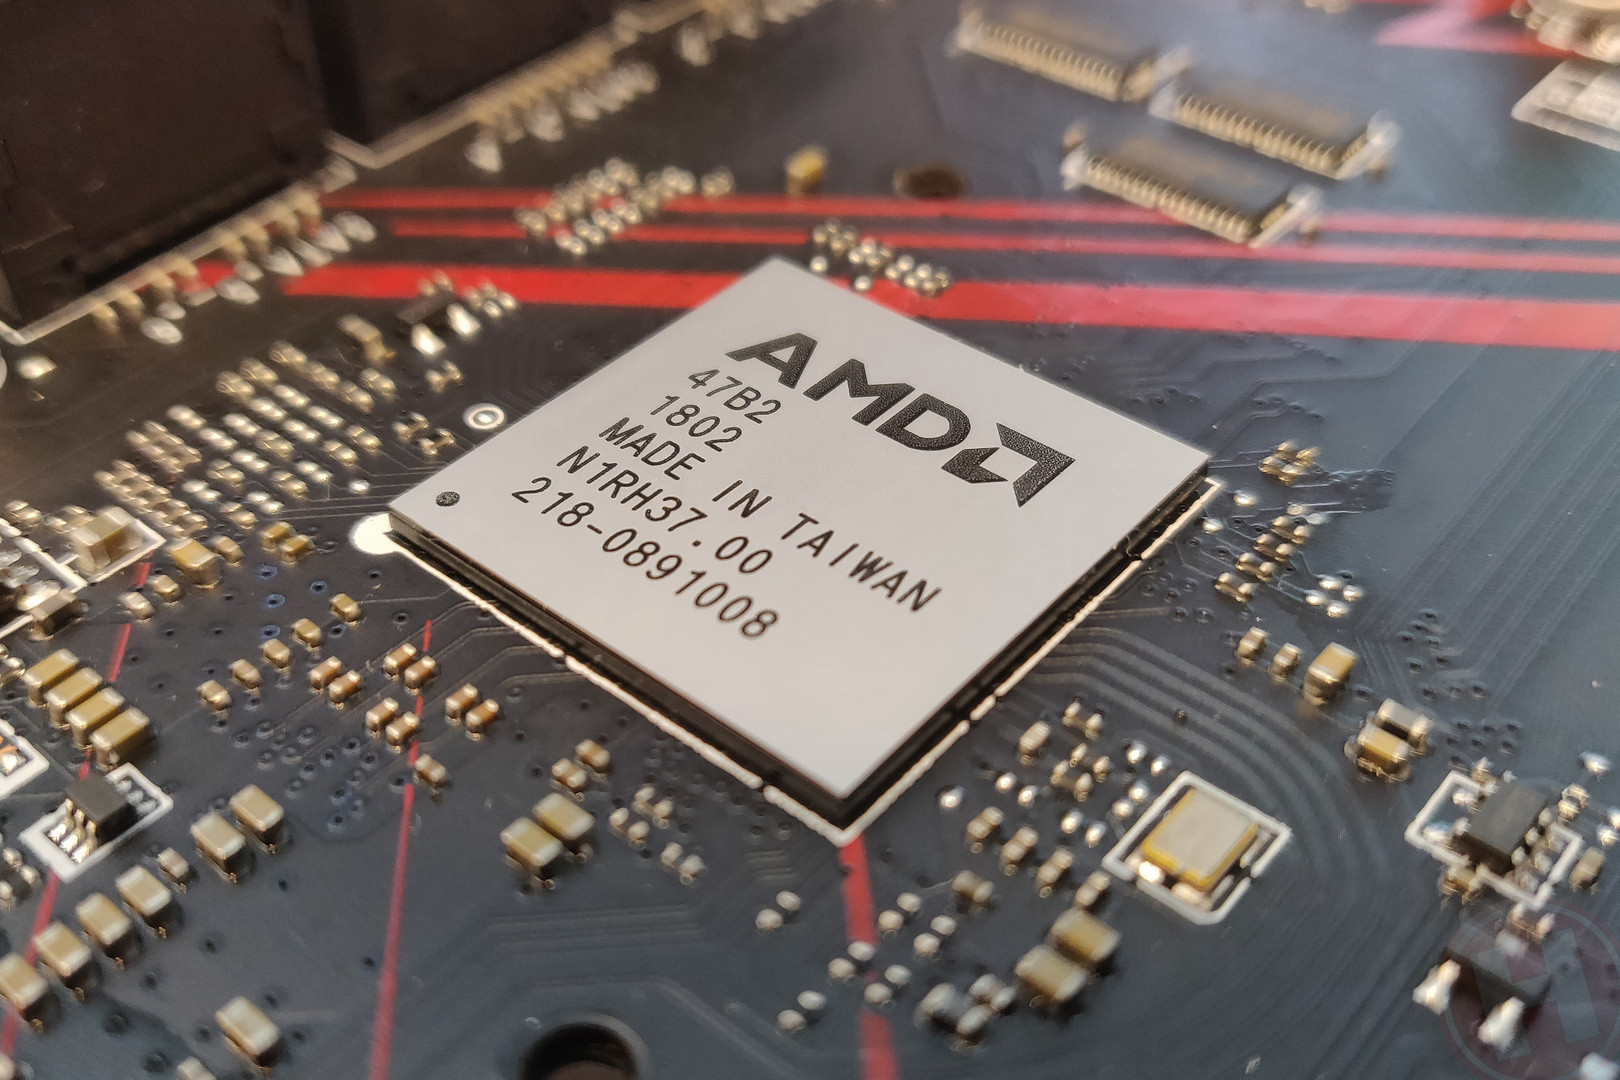 ASMedia to produce AMD B550 and A520 chipsets based on PCIe